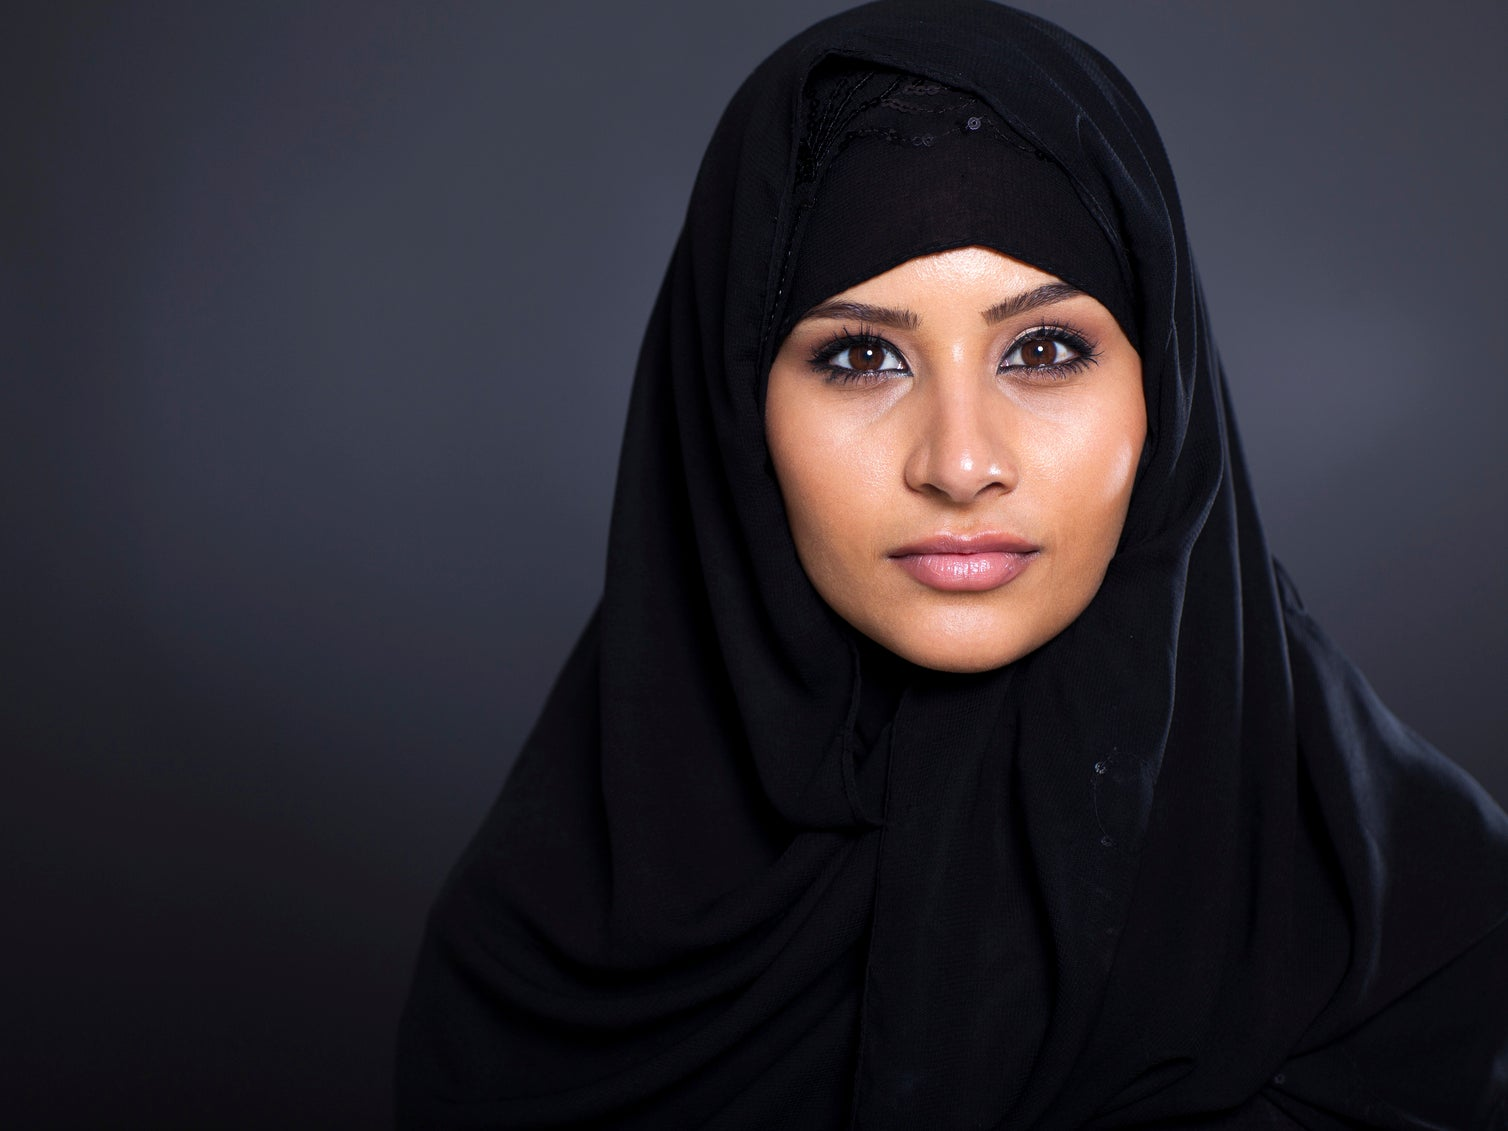 grace city muslim girl personals Christians disagree about how to respond to islam and muslims grace for muslims blog promotes a middle way between christianity and islam – namely jesus christ.